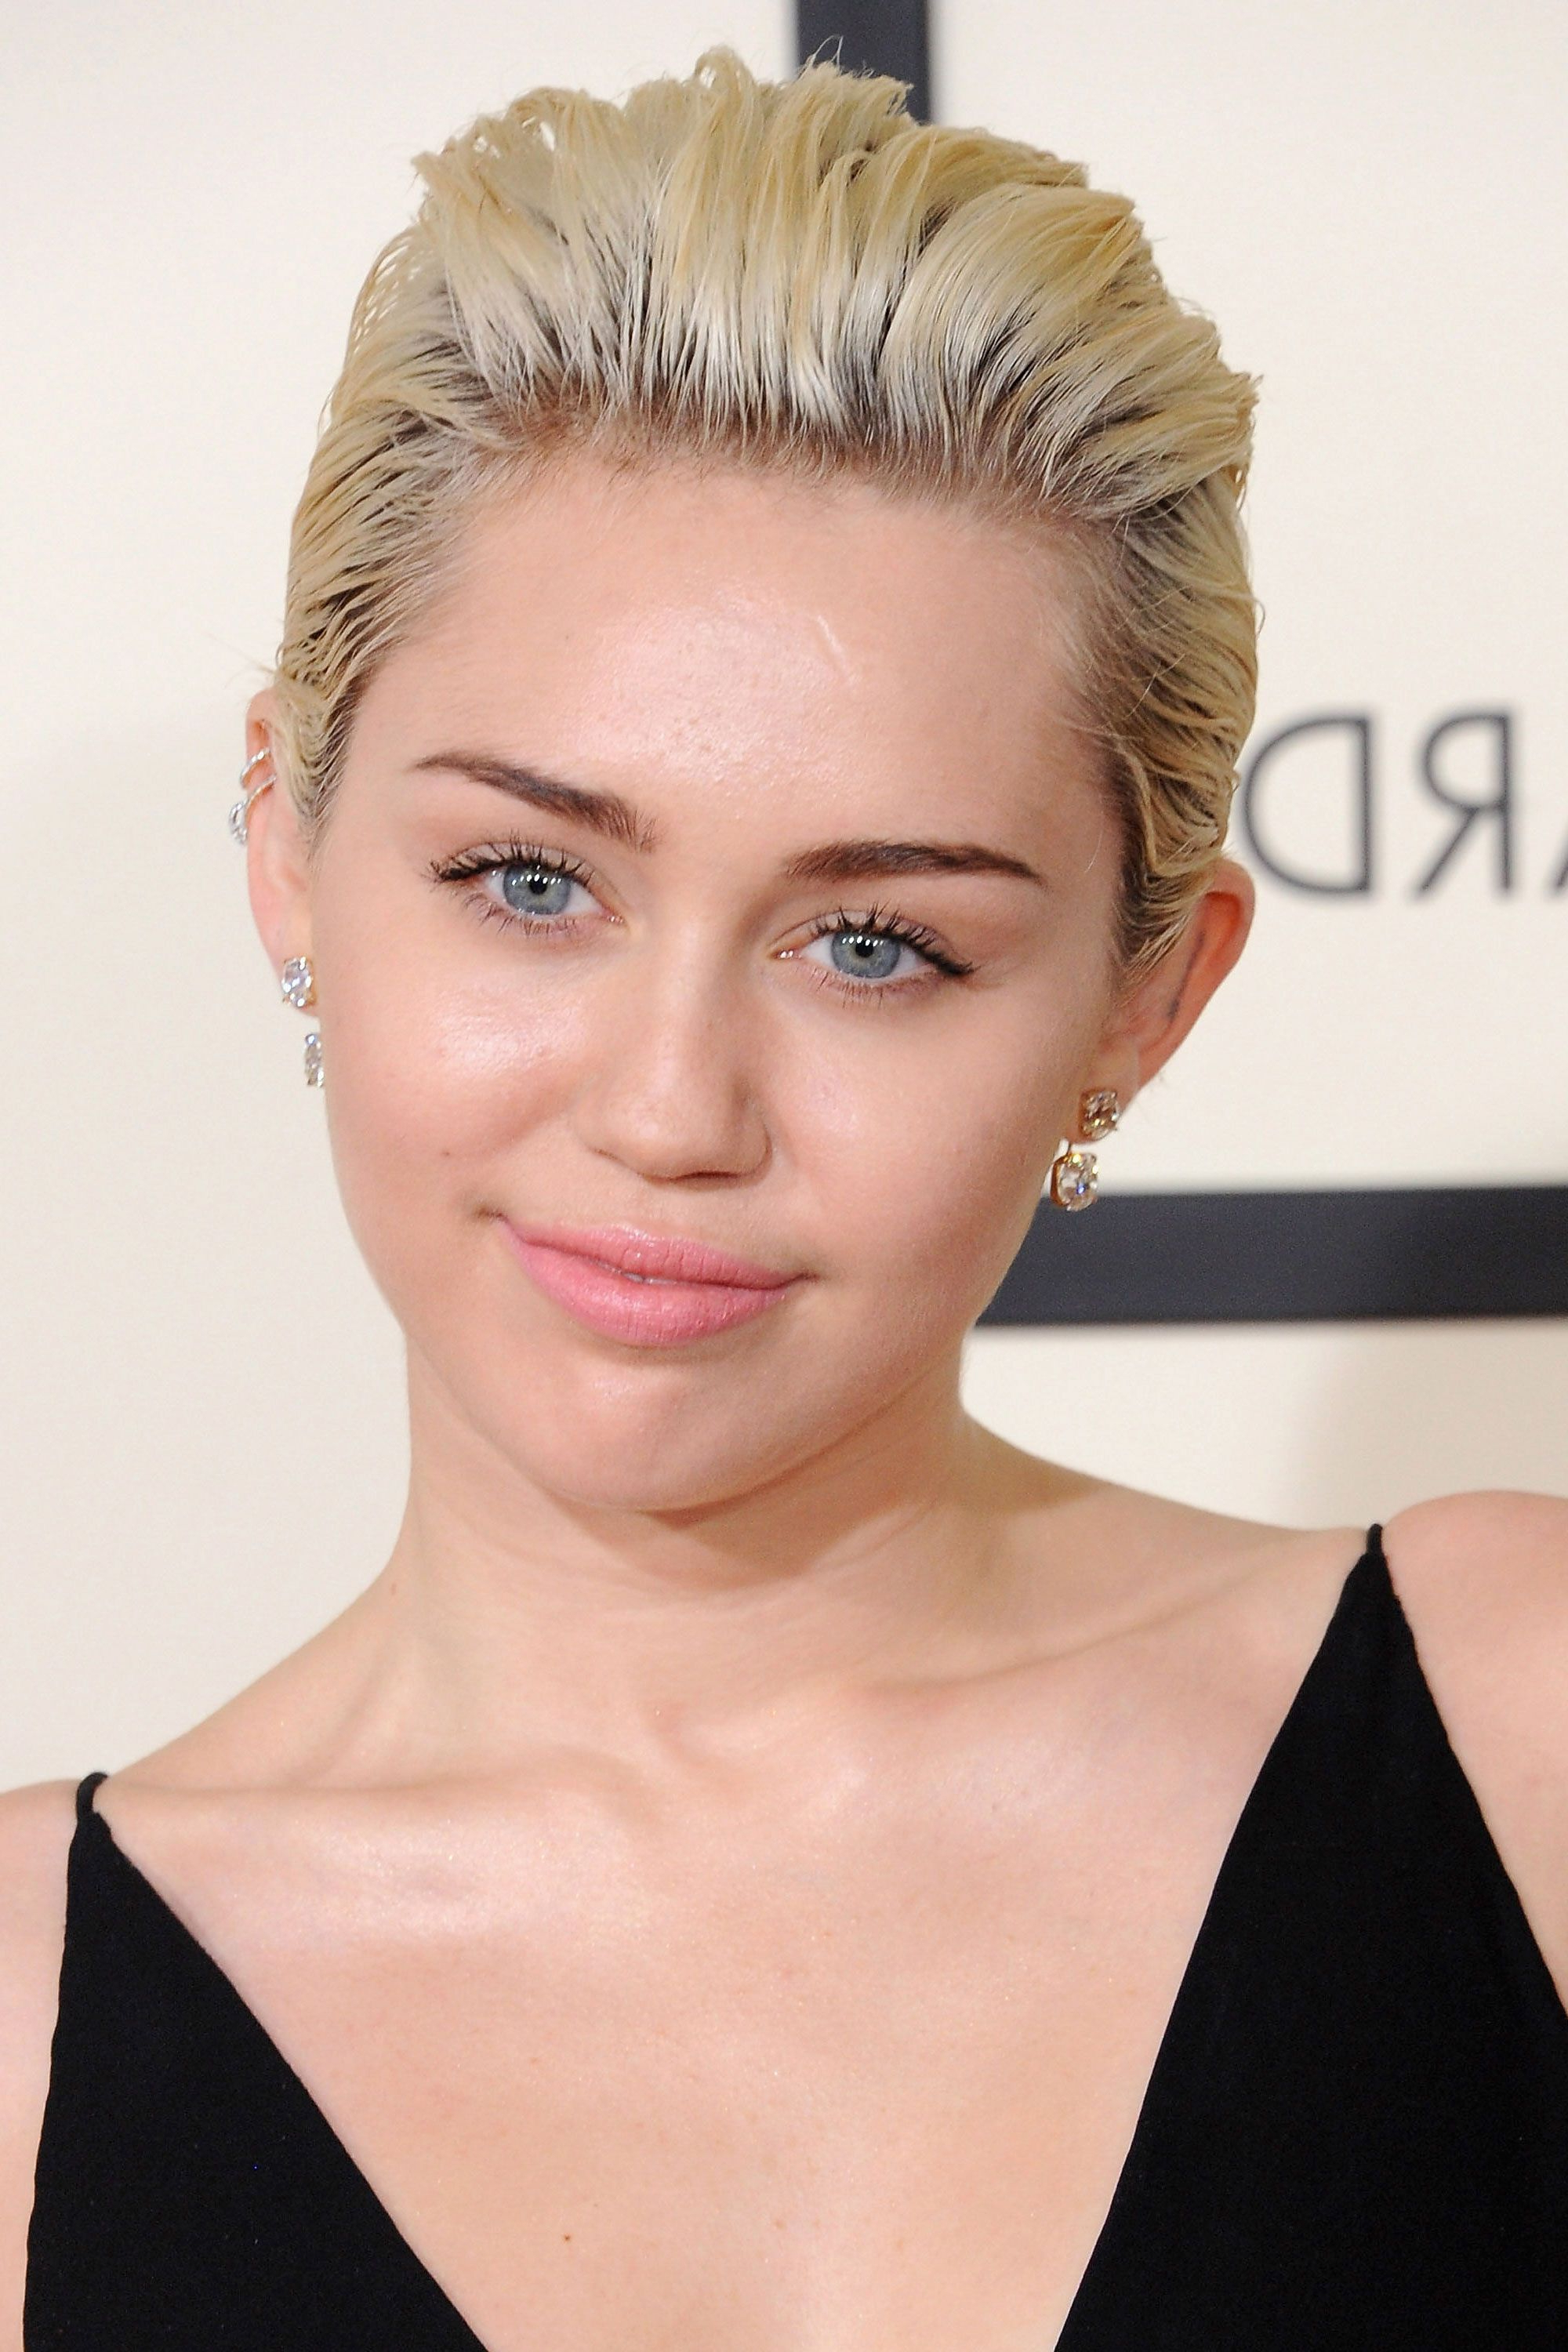 87 Cute Short Hairstyles & Haircuts – How To Style Short Hair Inside Miley Cyrus Short Haircuts (Gallery 11 of 25)